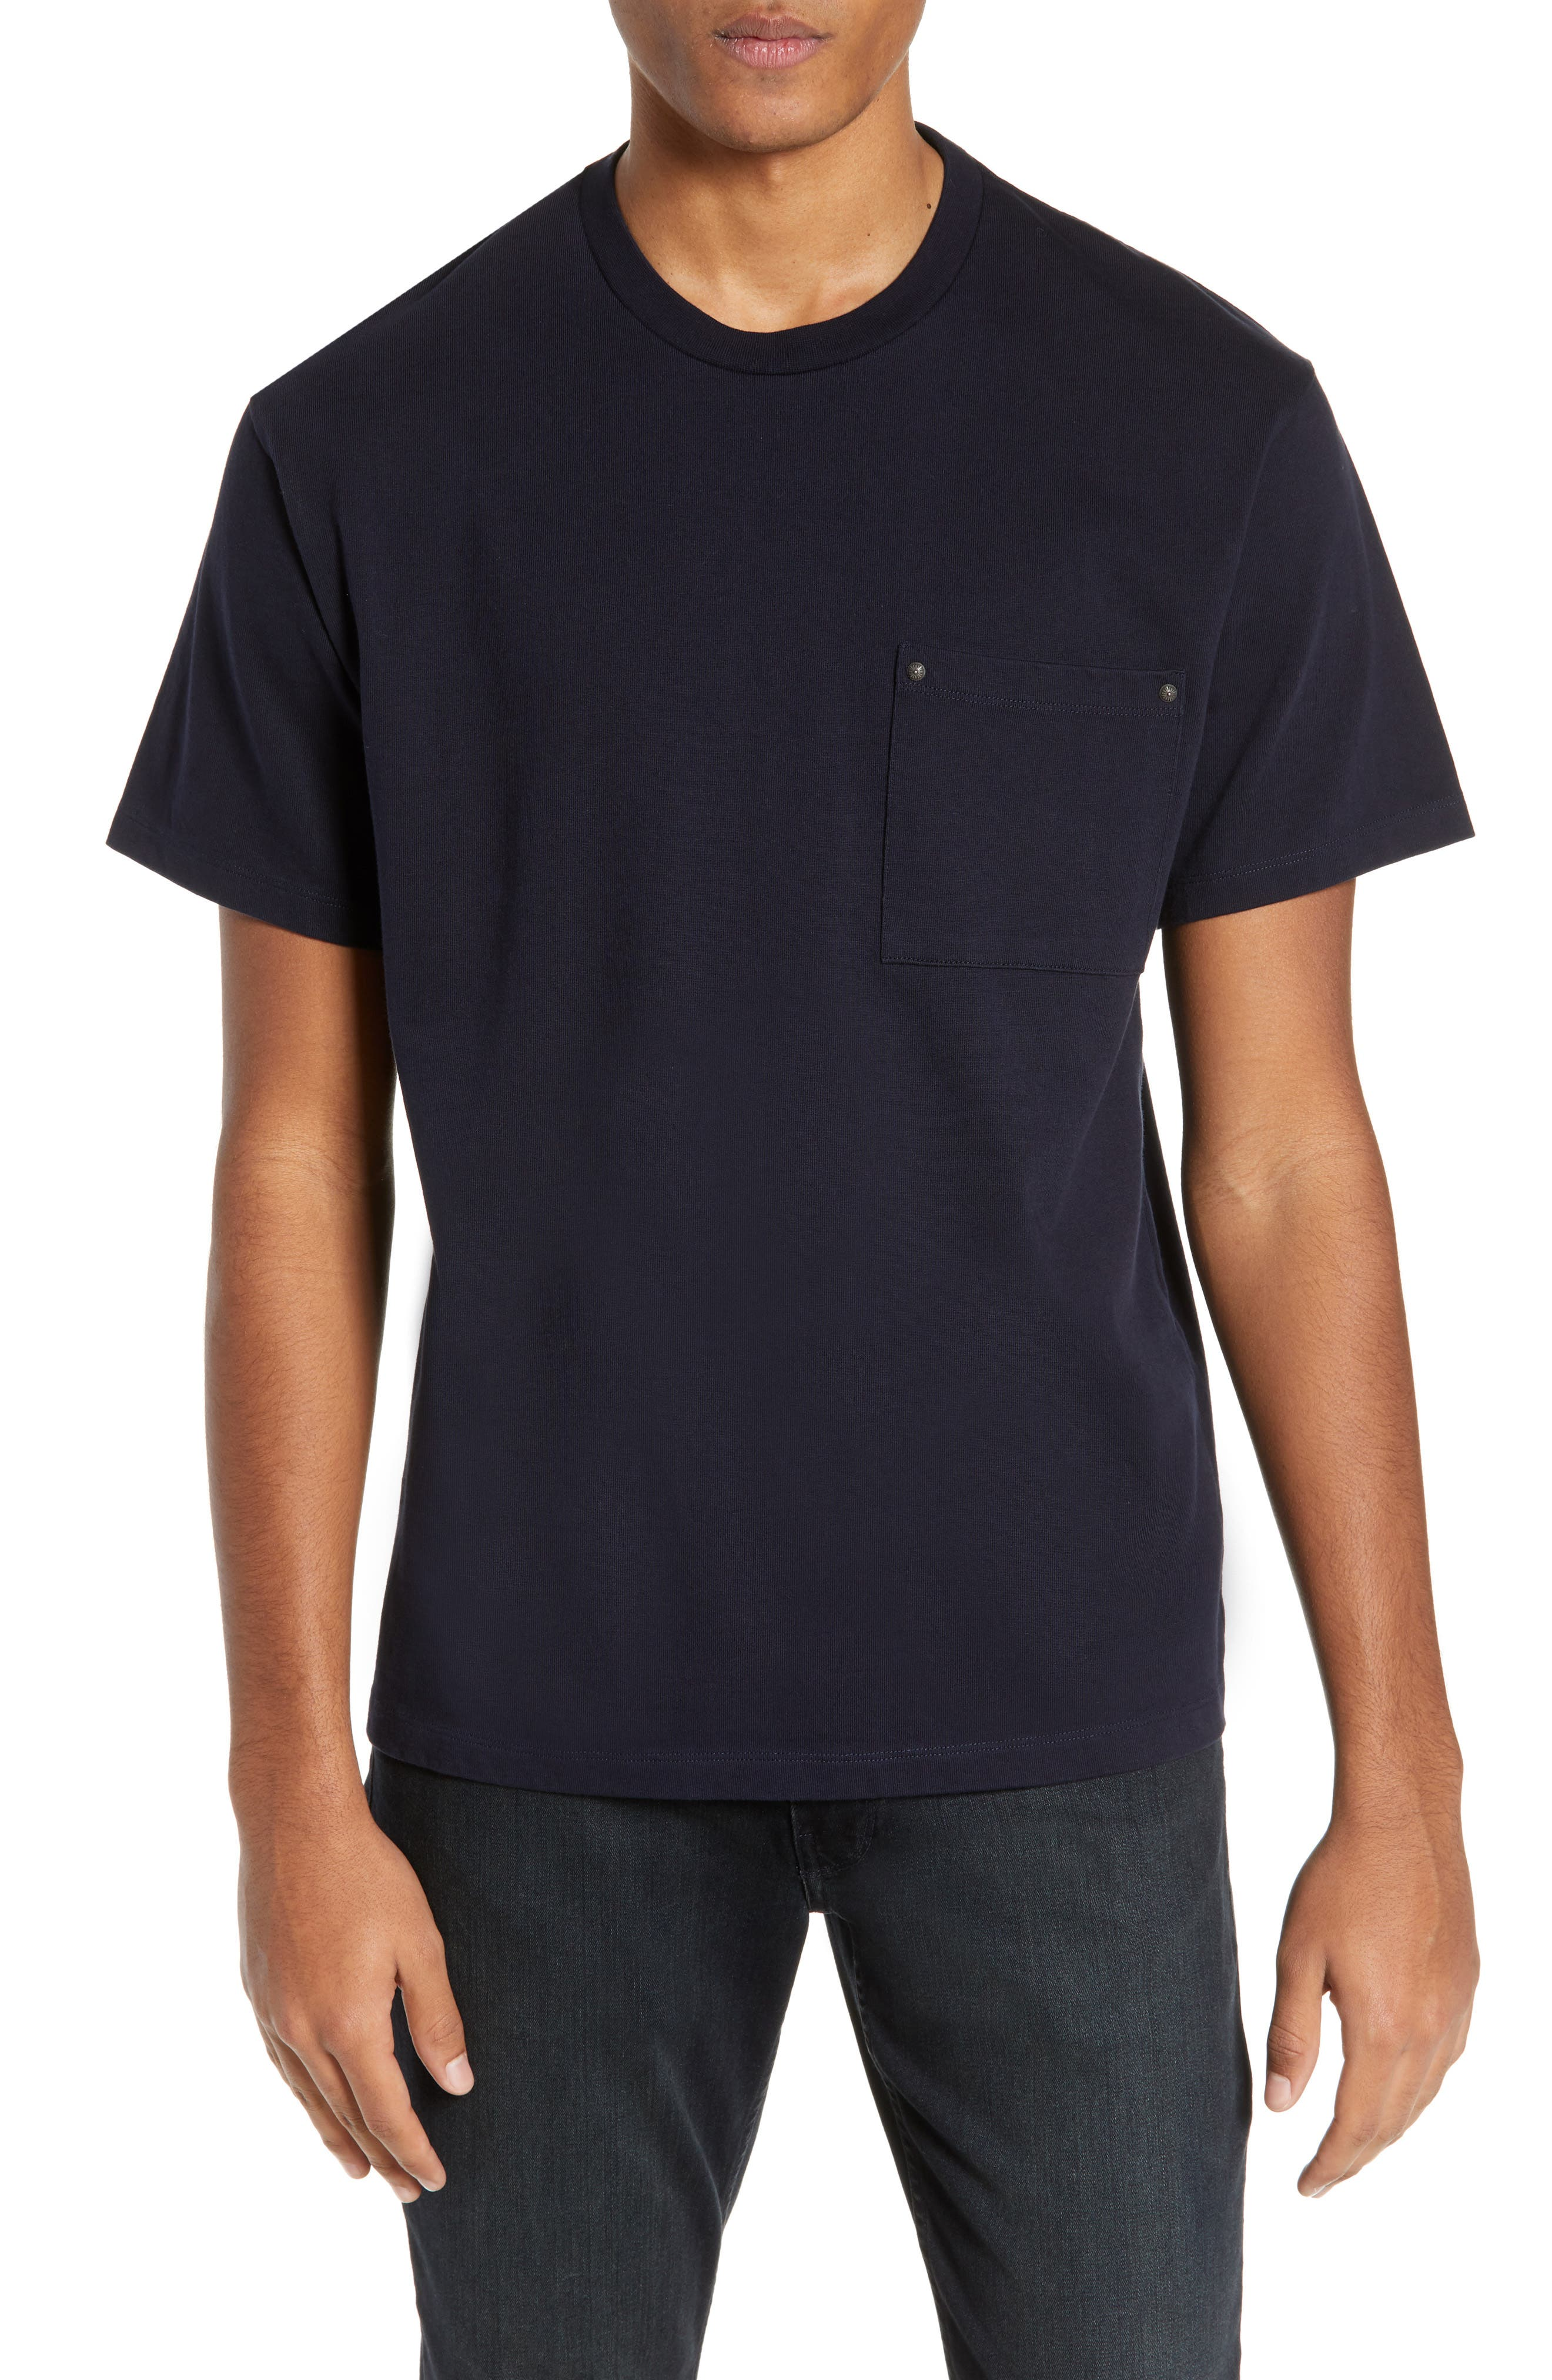 THE KOOPLES Pocket T-Shirt, Main, color, NAVY